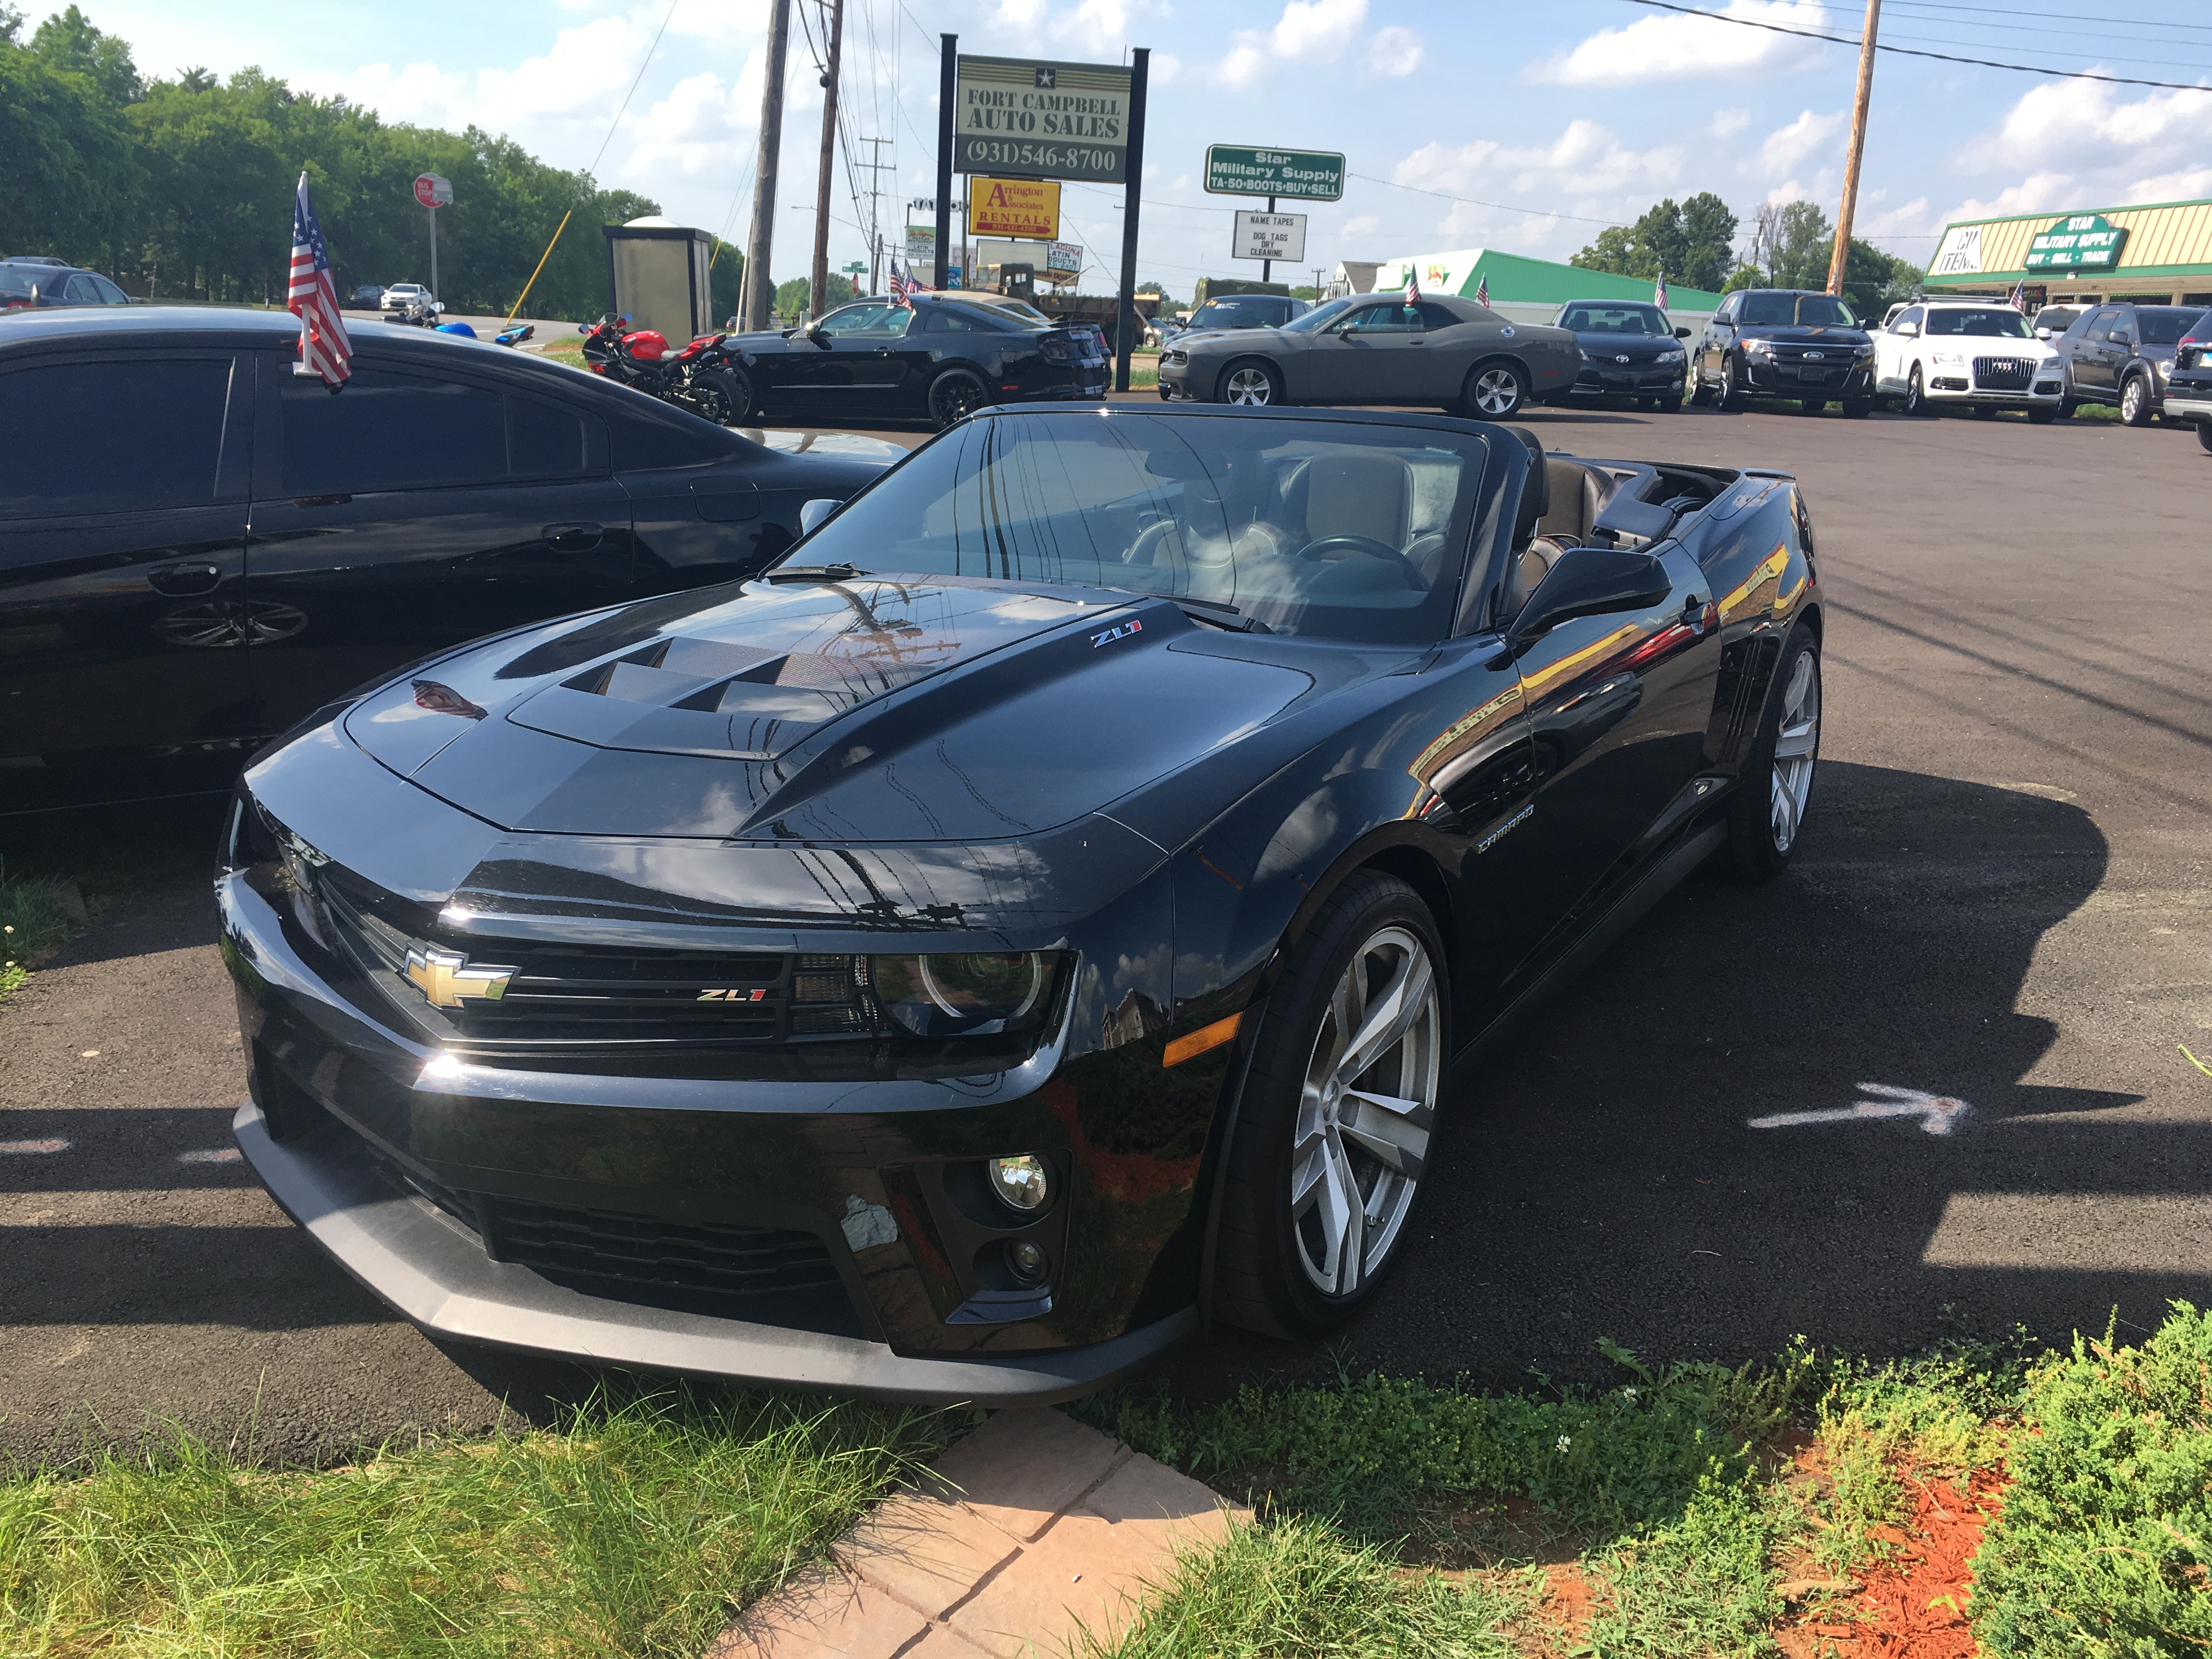 Fort Campbell Auto Sales 2771 Fort Campbell Blvd Clarksville TN